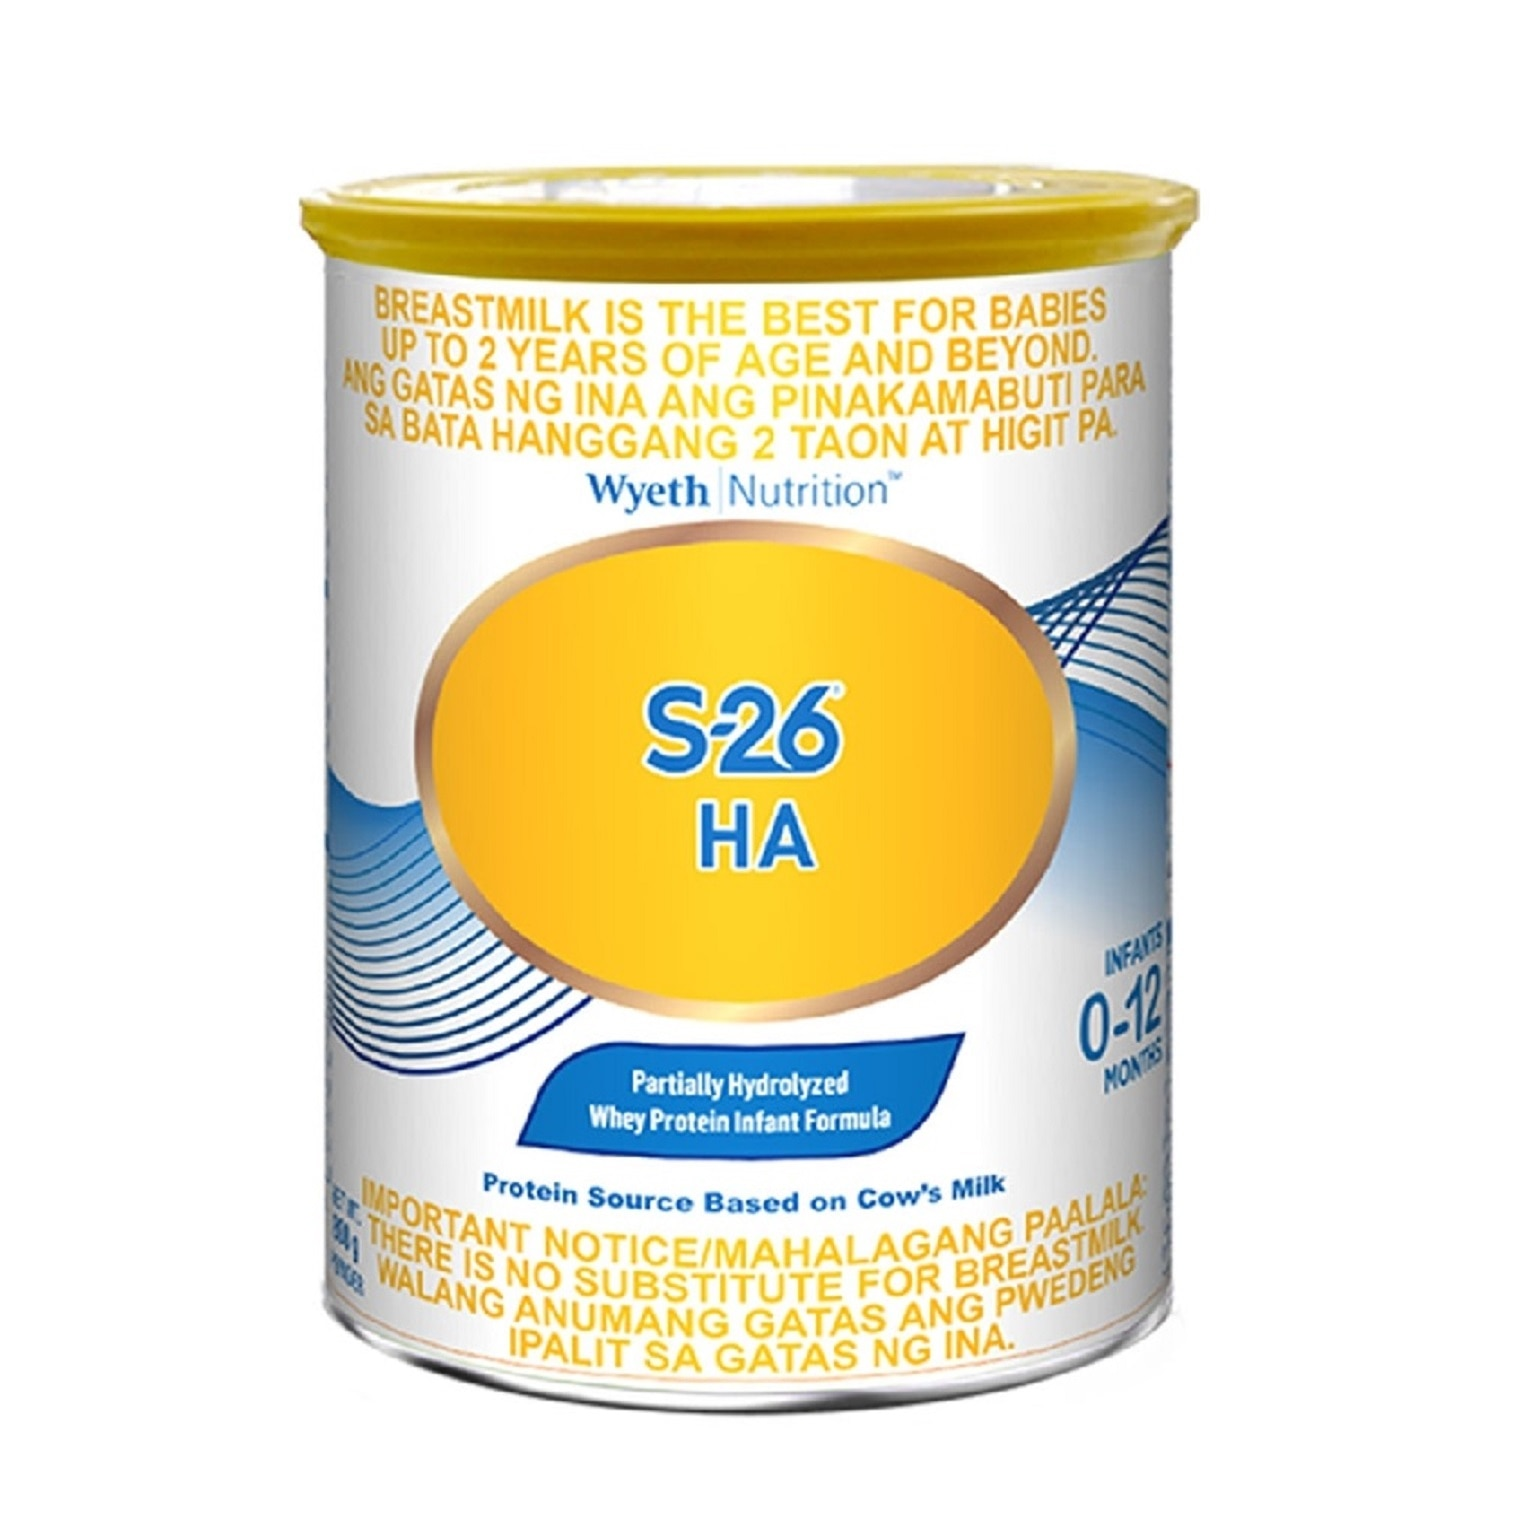 HA GOLD® Partially Hydrolyzed Whey Protein Infant Formula for 0-12 months 800g